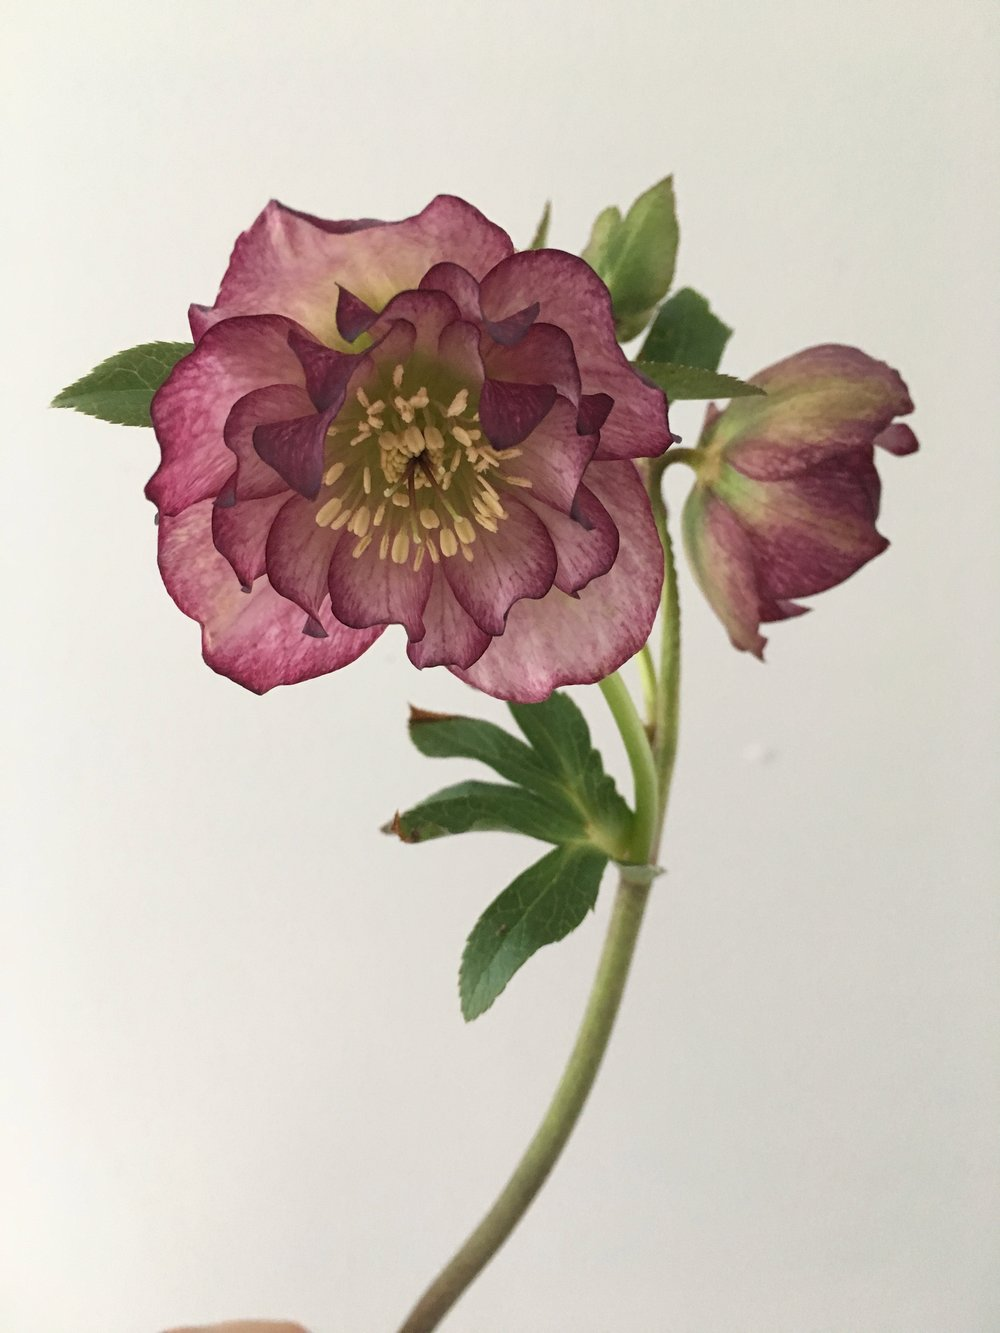 Hydrating Hellebores